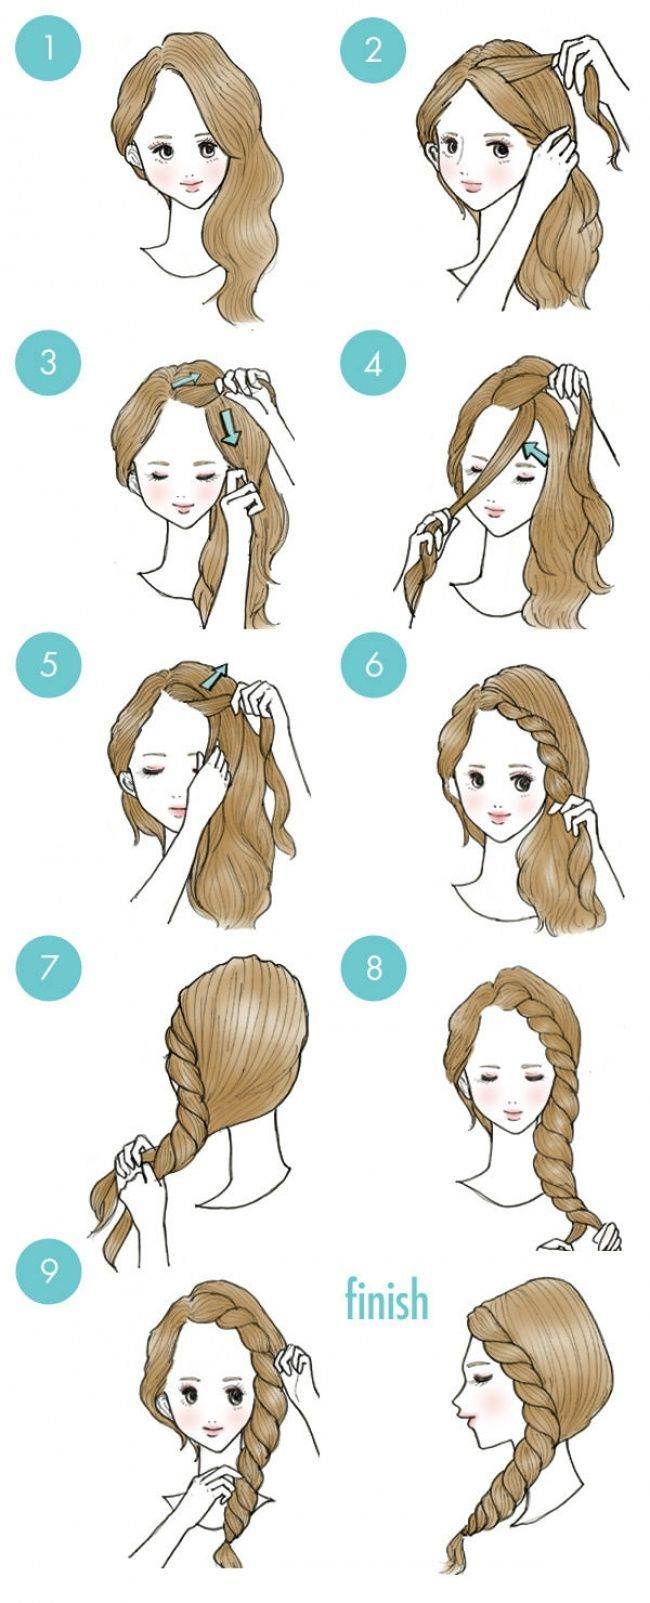 awesome 20 Easy And Cute Hairstyles That Can Be Done In Just A Few Minutes